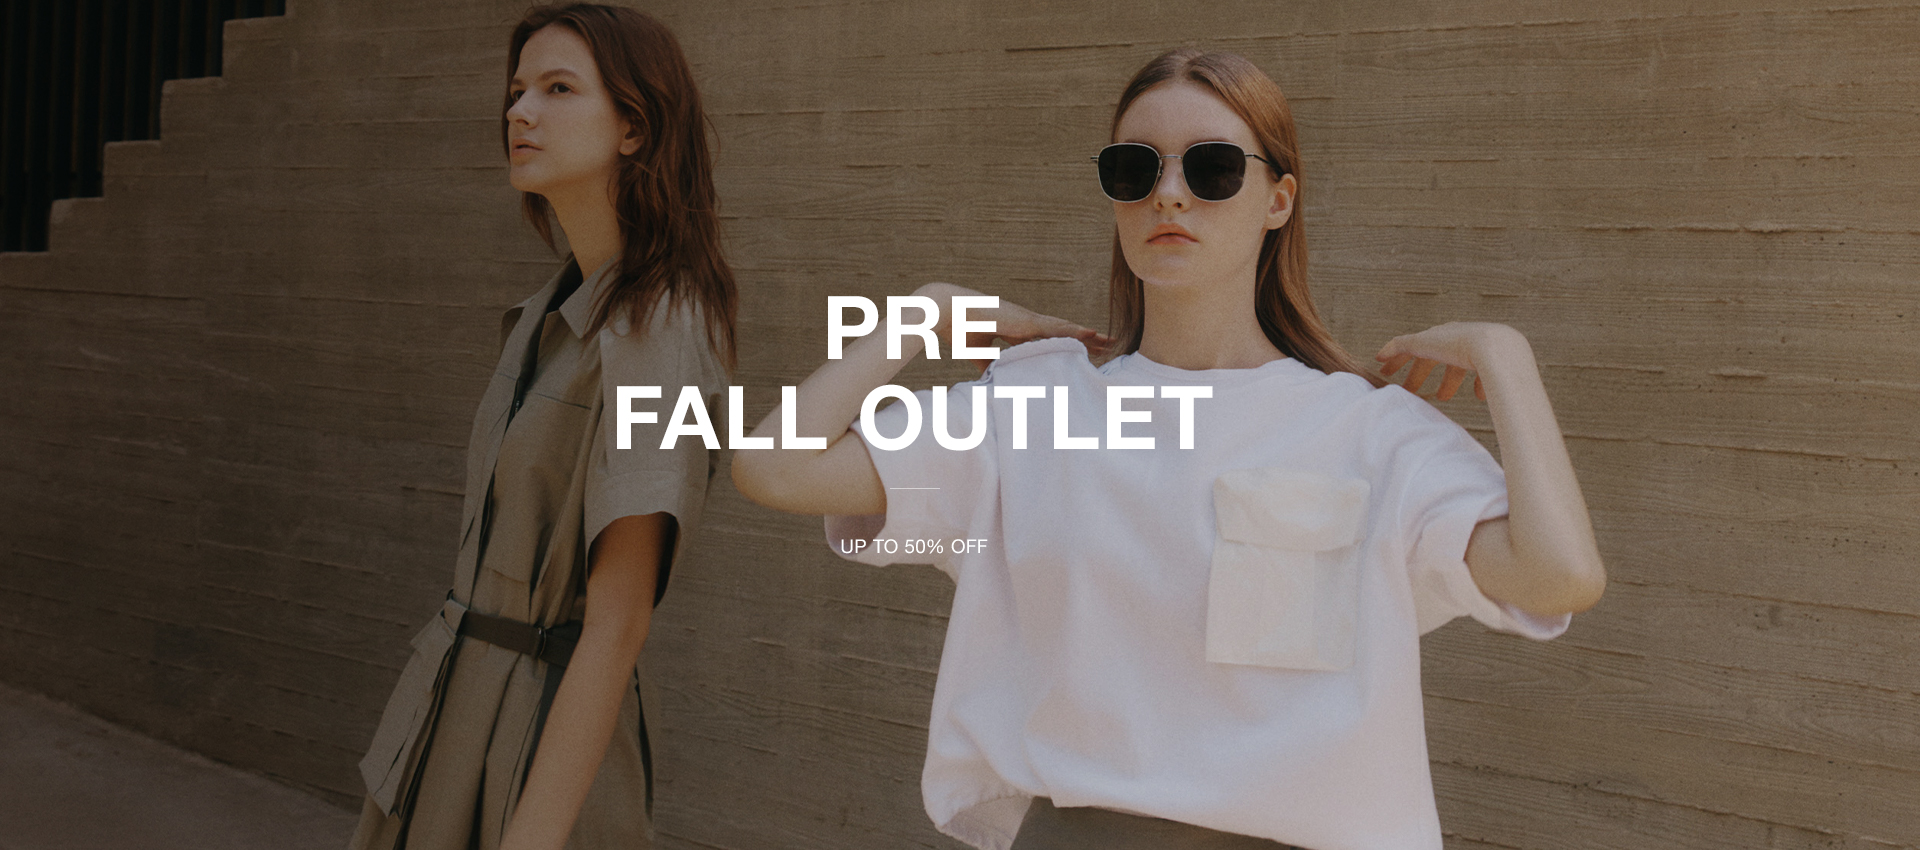 PRE-FALL OUTLET